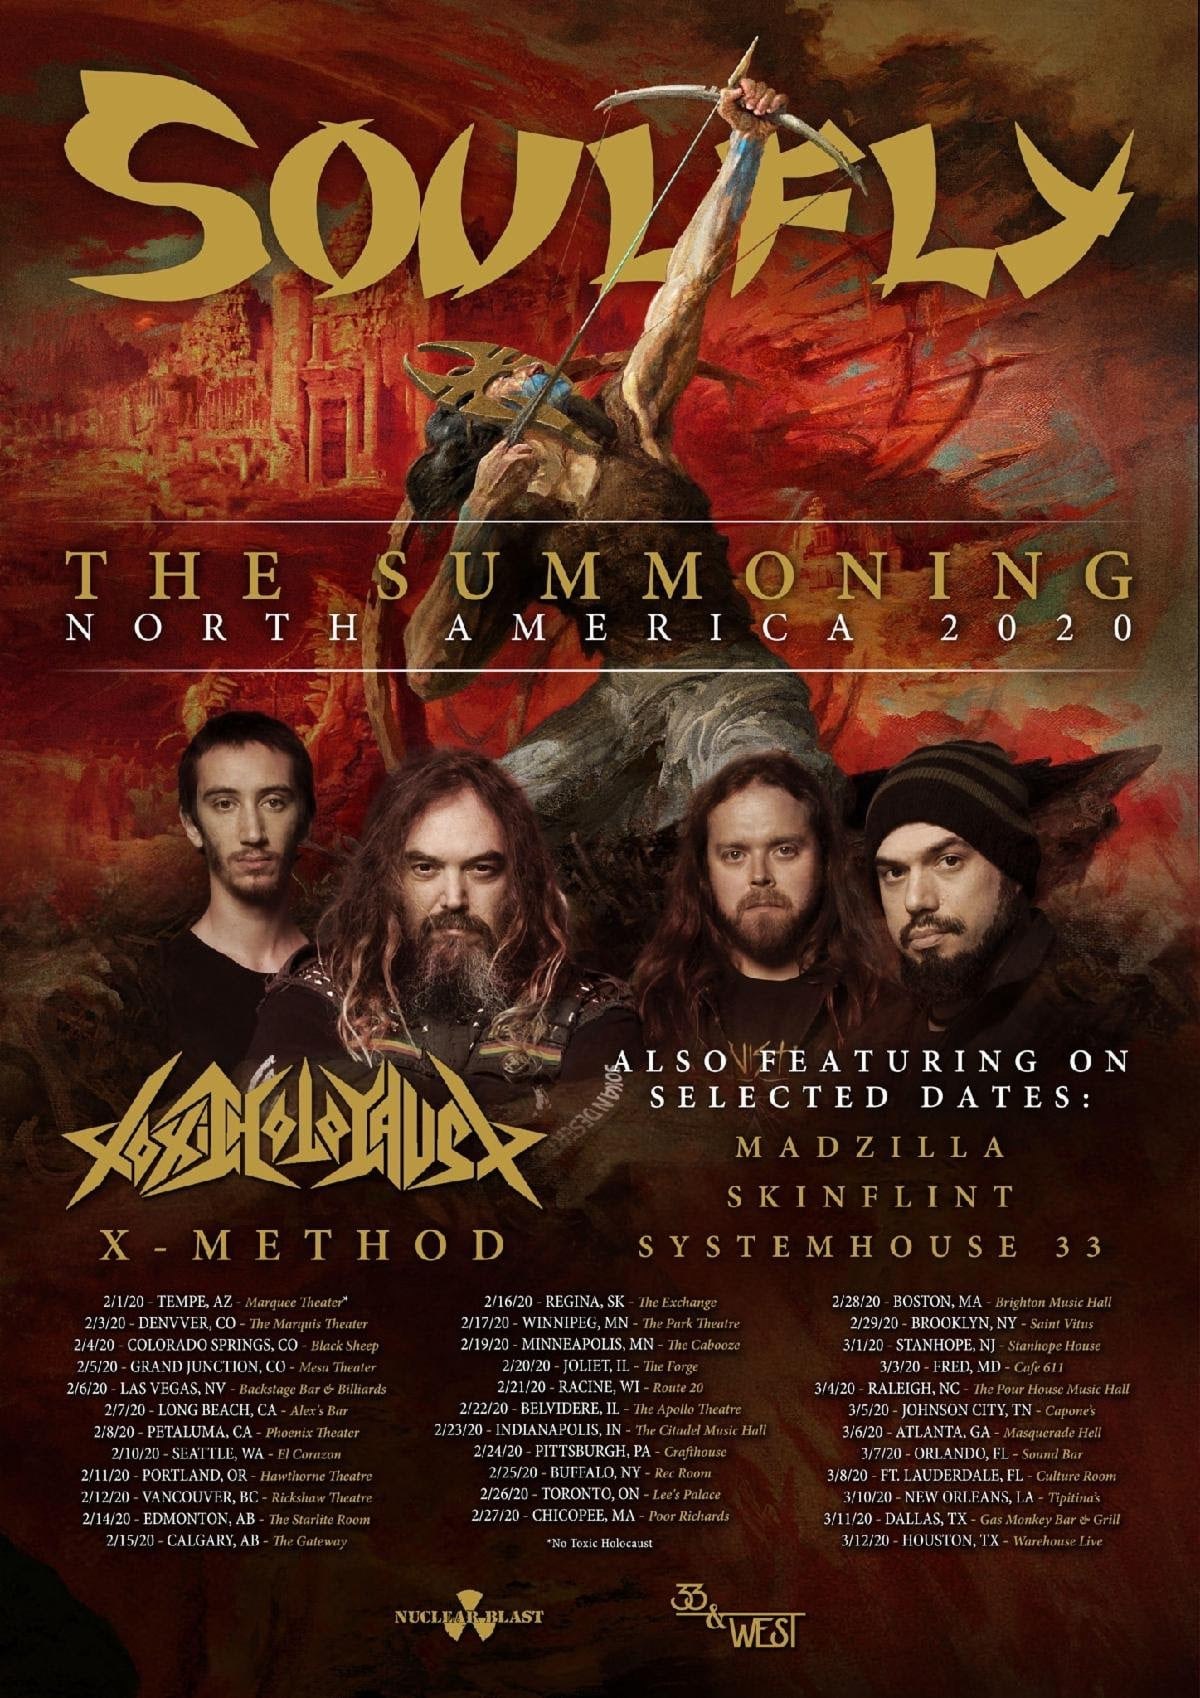 SOULFLY tour with TOXIC HOLOCAUST